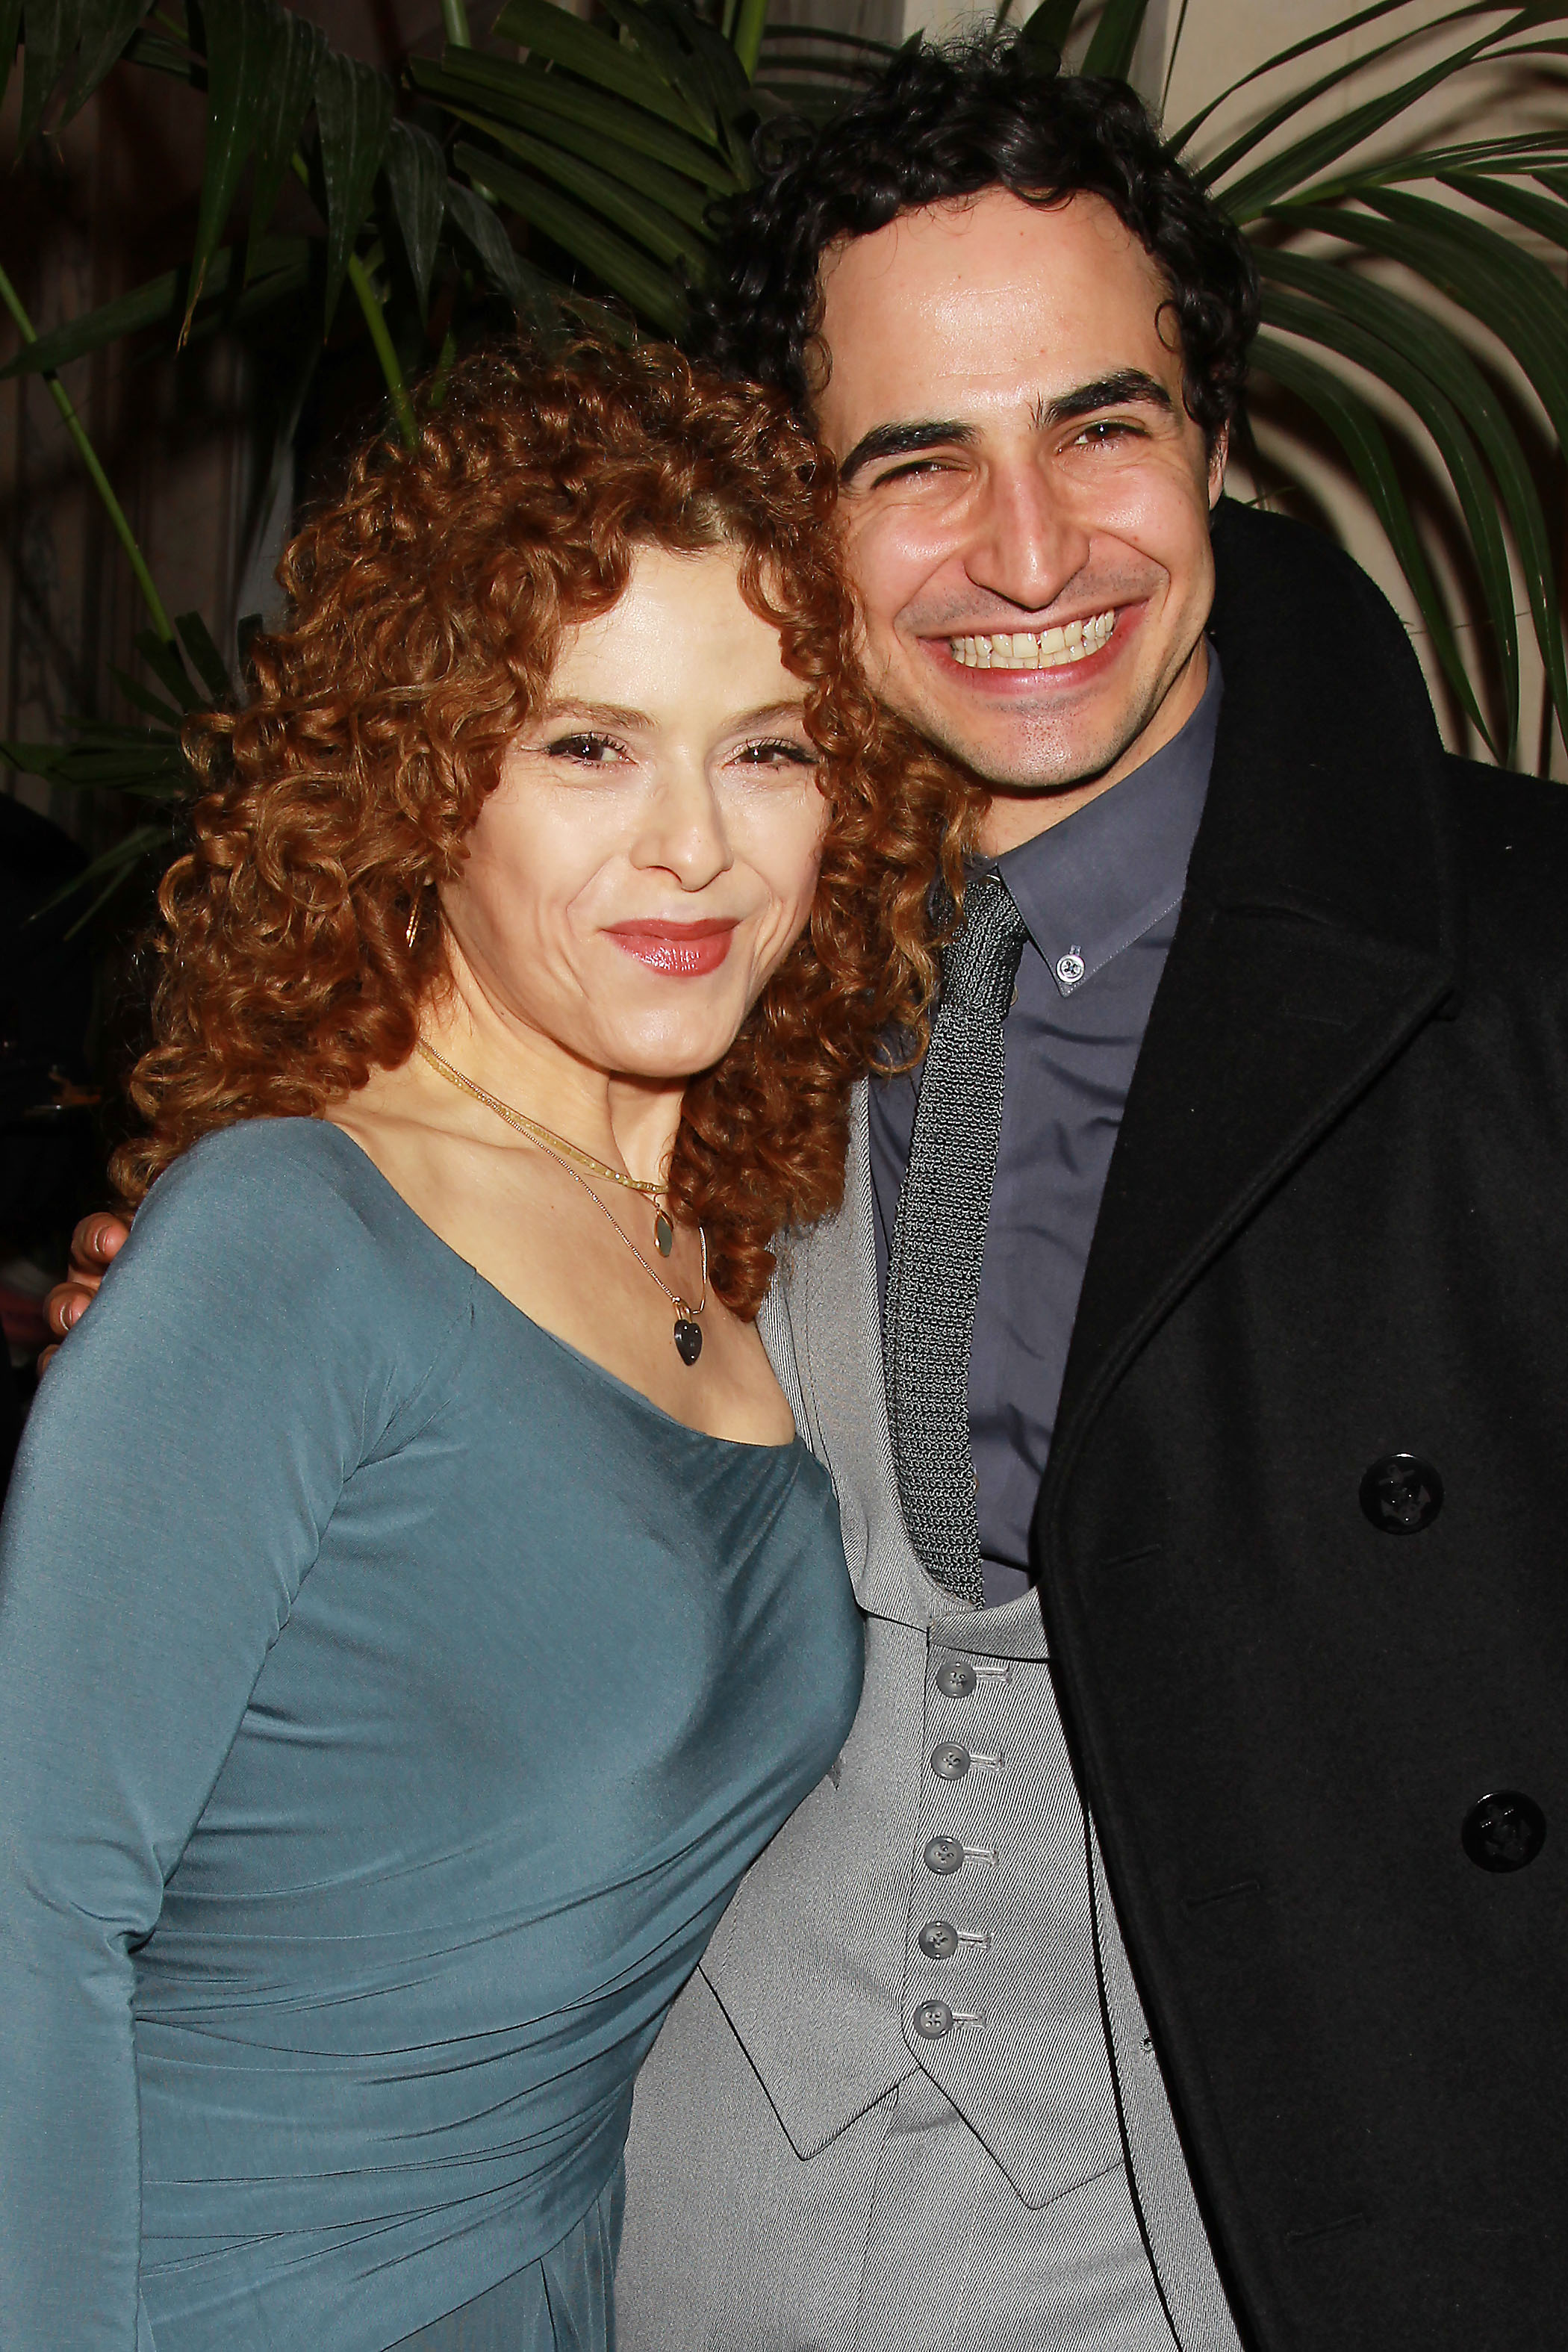 Bernadette Peters and Zac Posen at the event (Photo: Dave Alloca/StarPix).